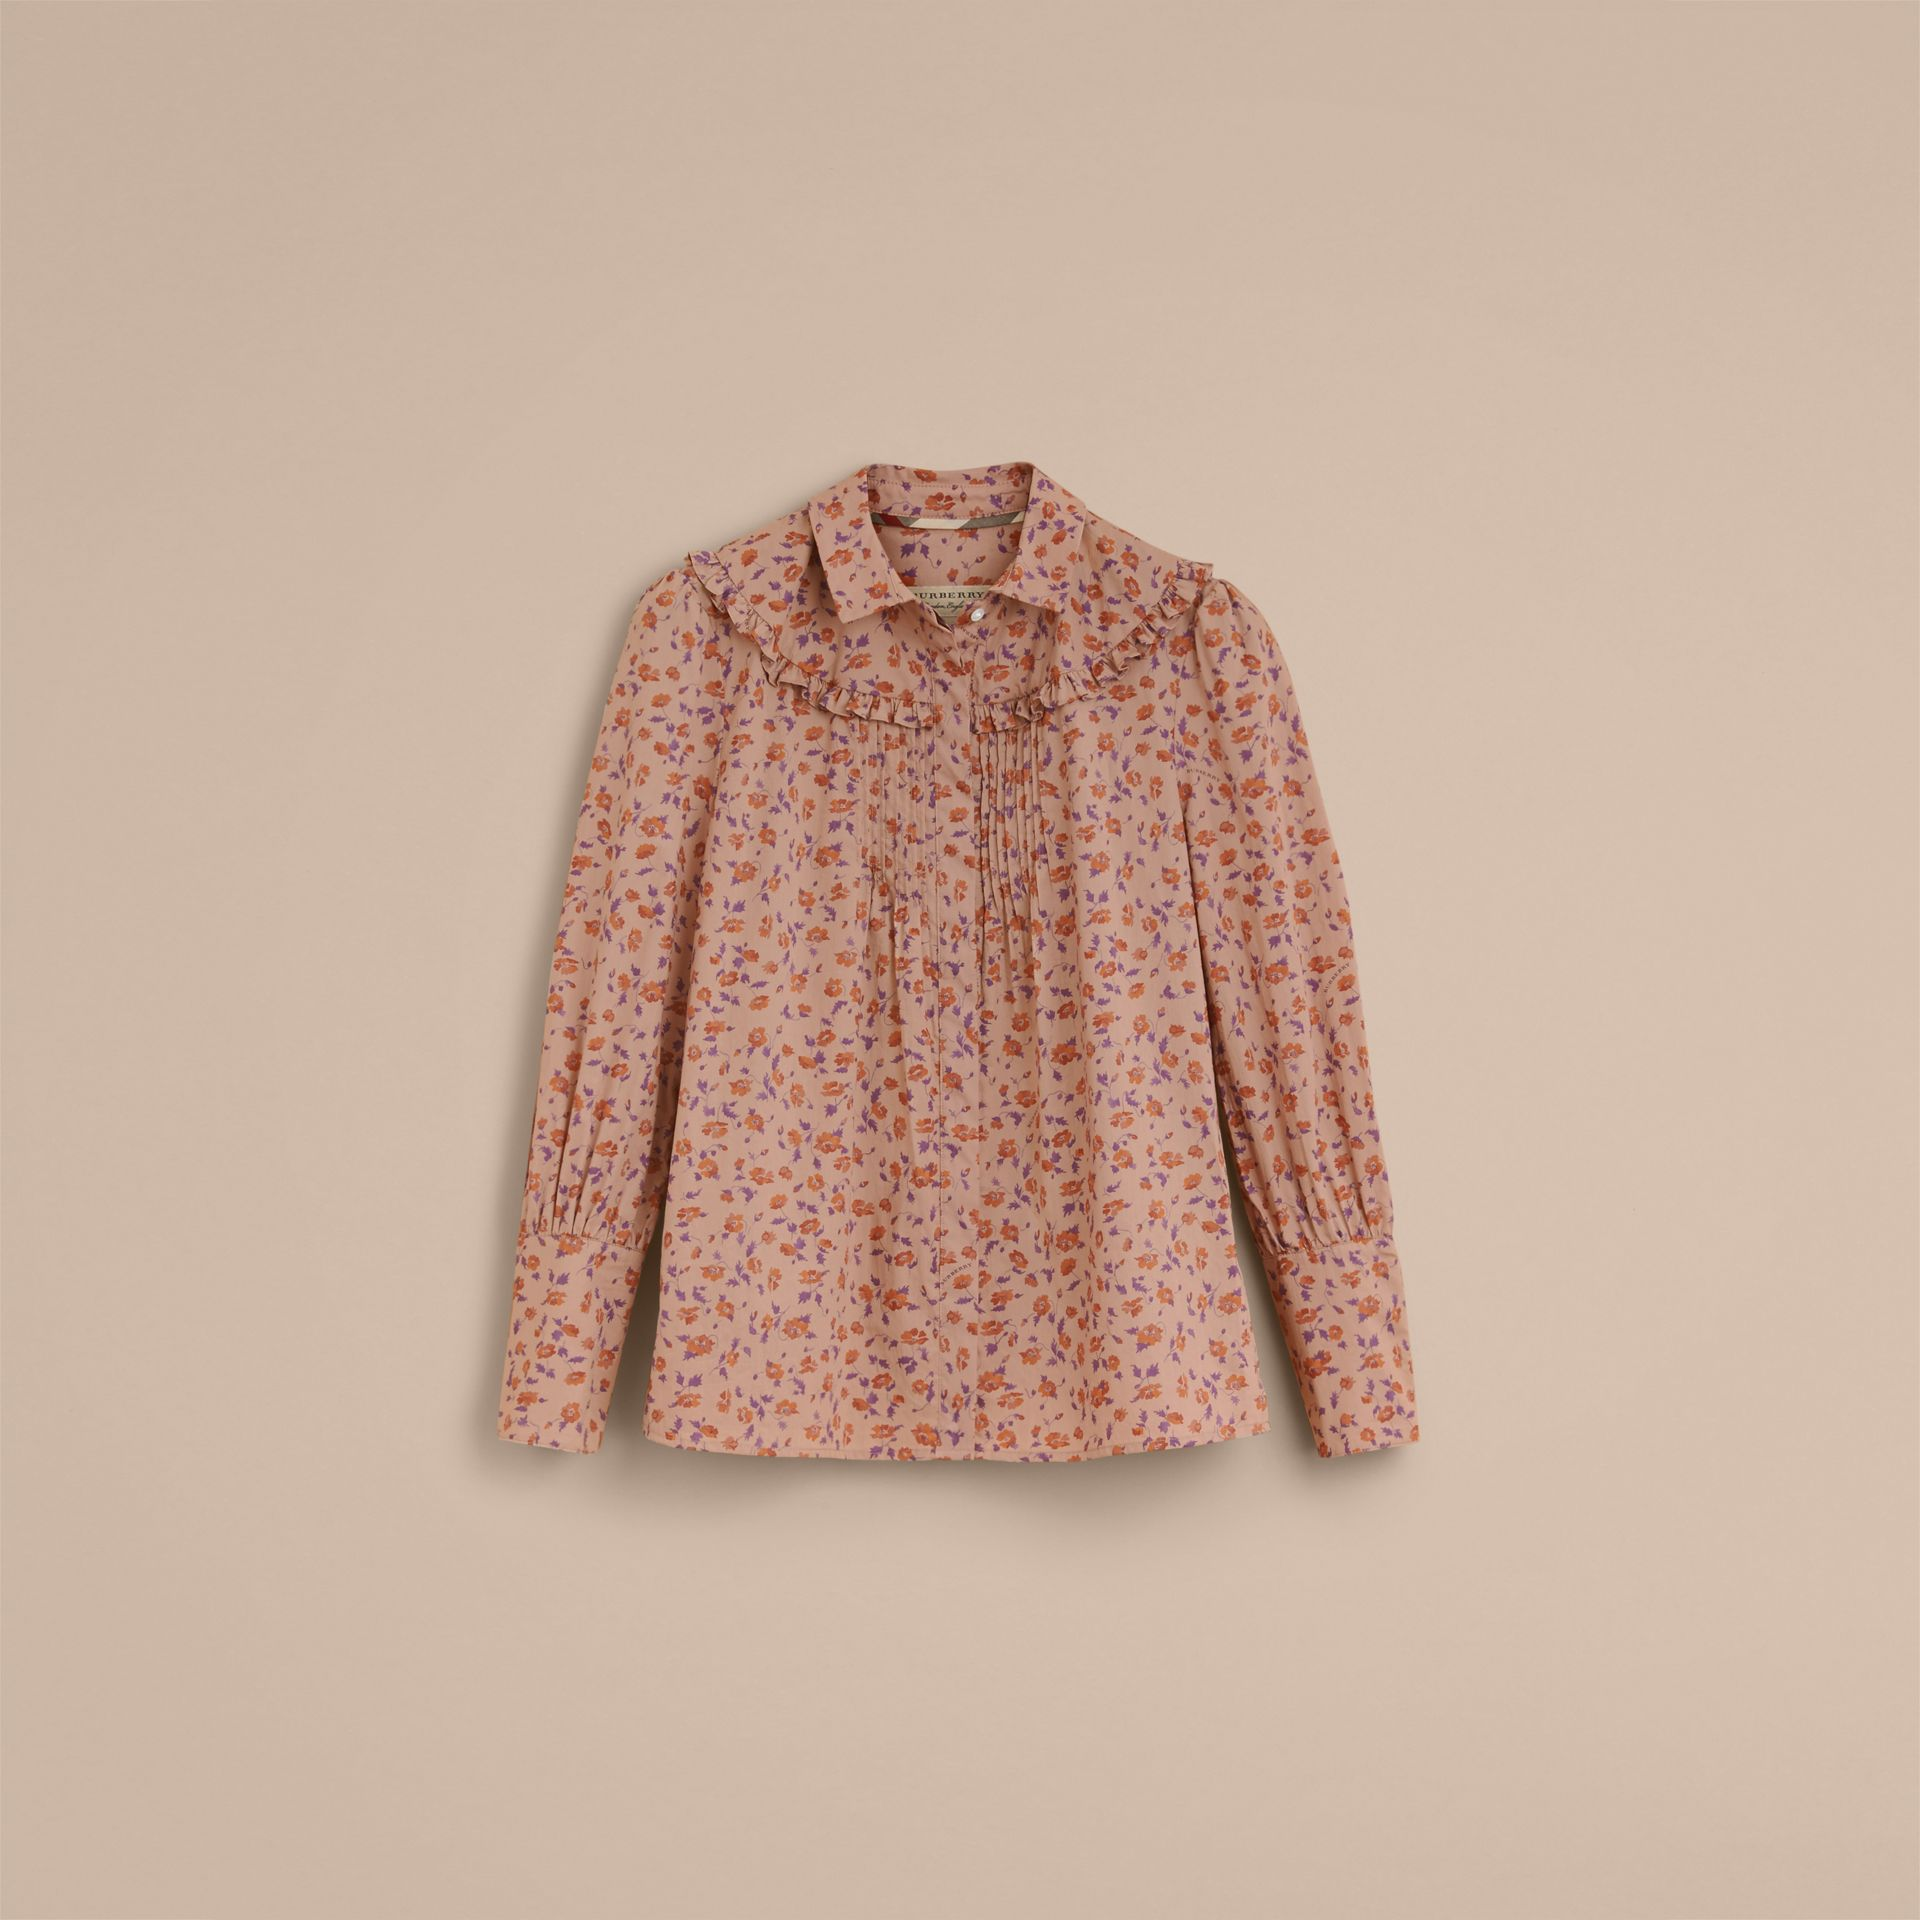 Ruffle Yoke Floral Print Cotton Shirt in Light Copper - Women | Burberry Singapore - gallery image 4